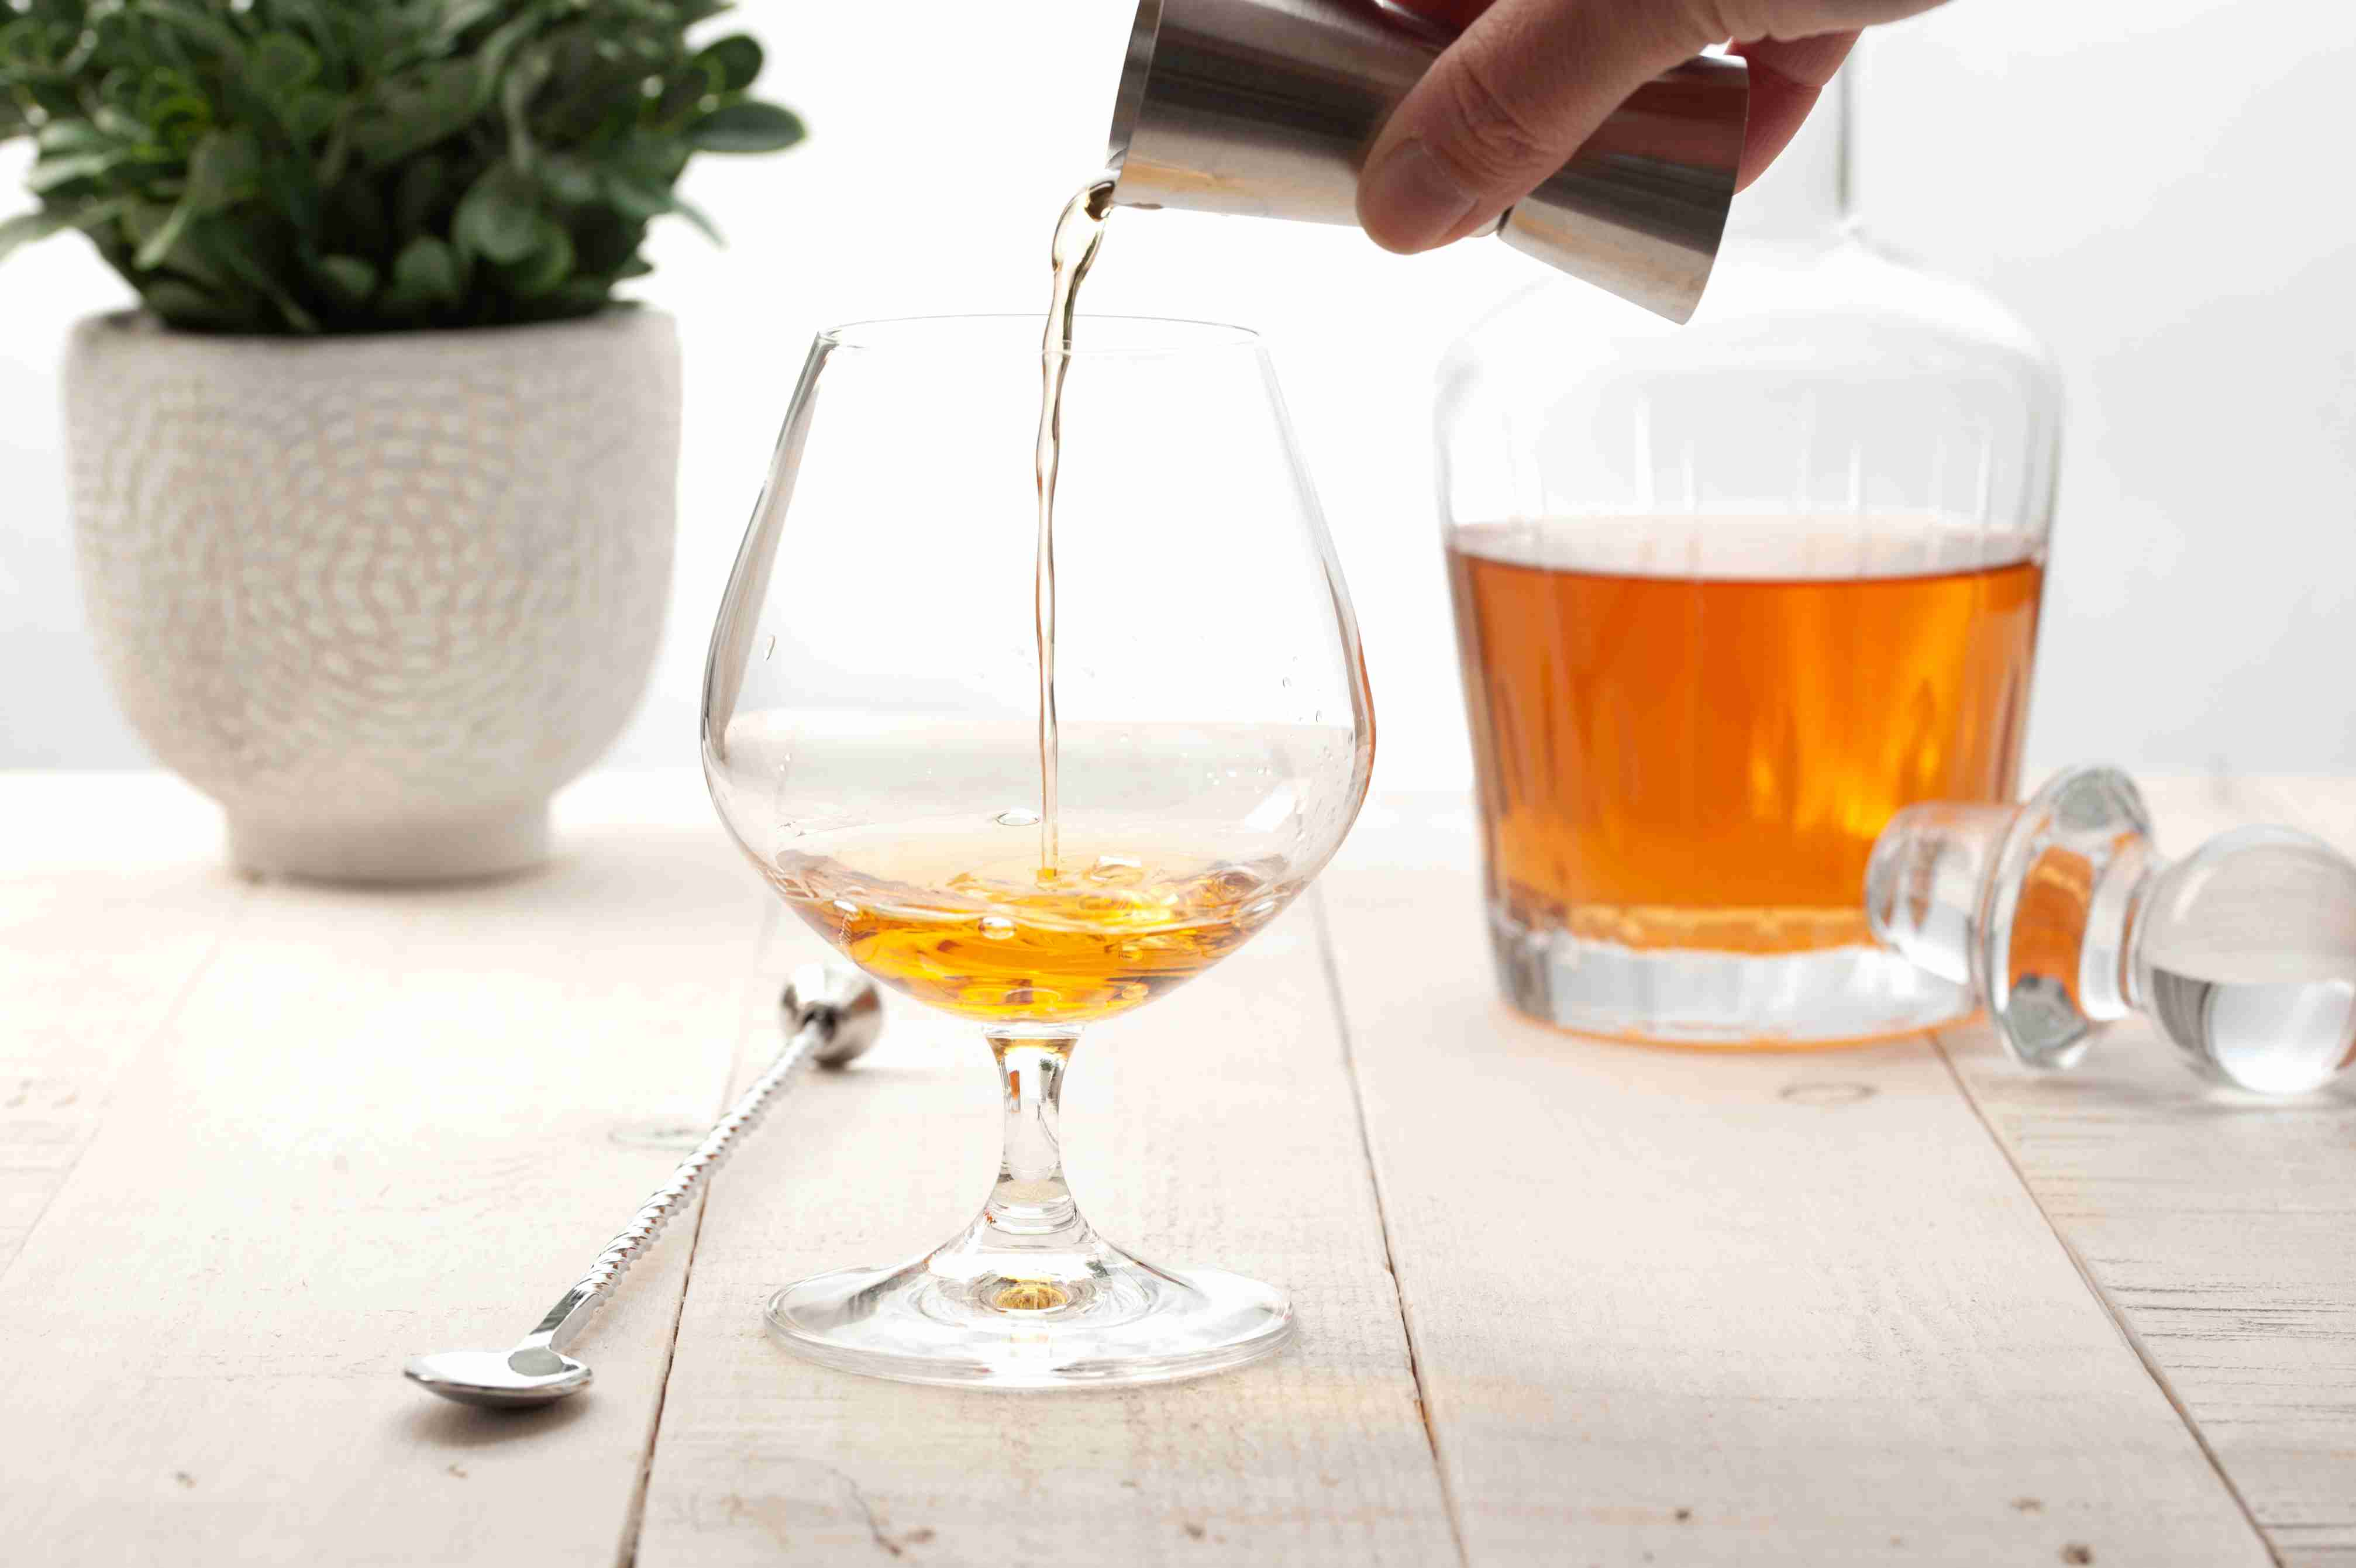 Pouring the brandy and Bénédictine into a snifter